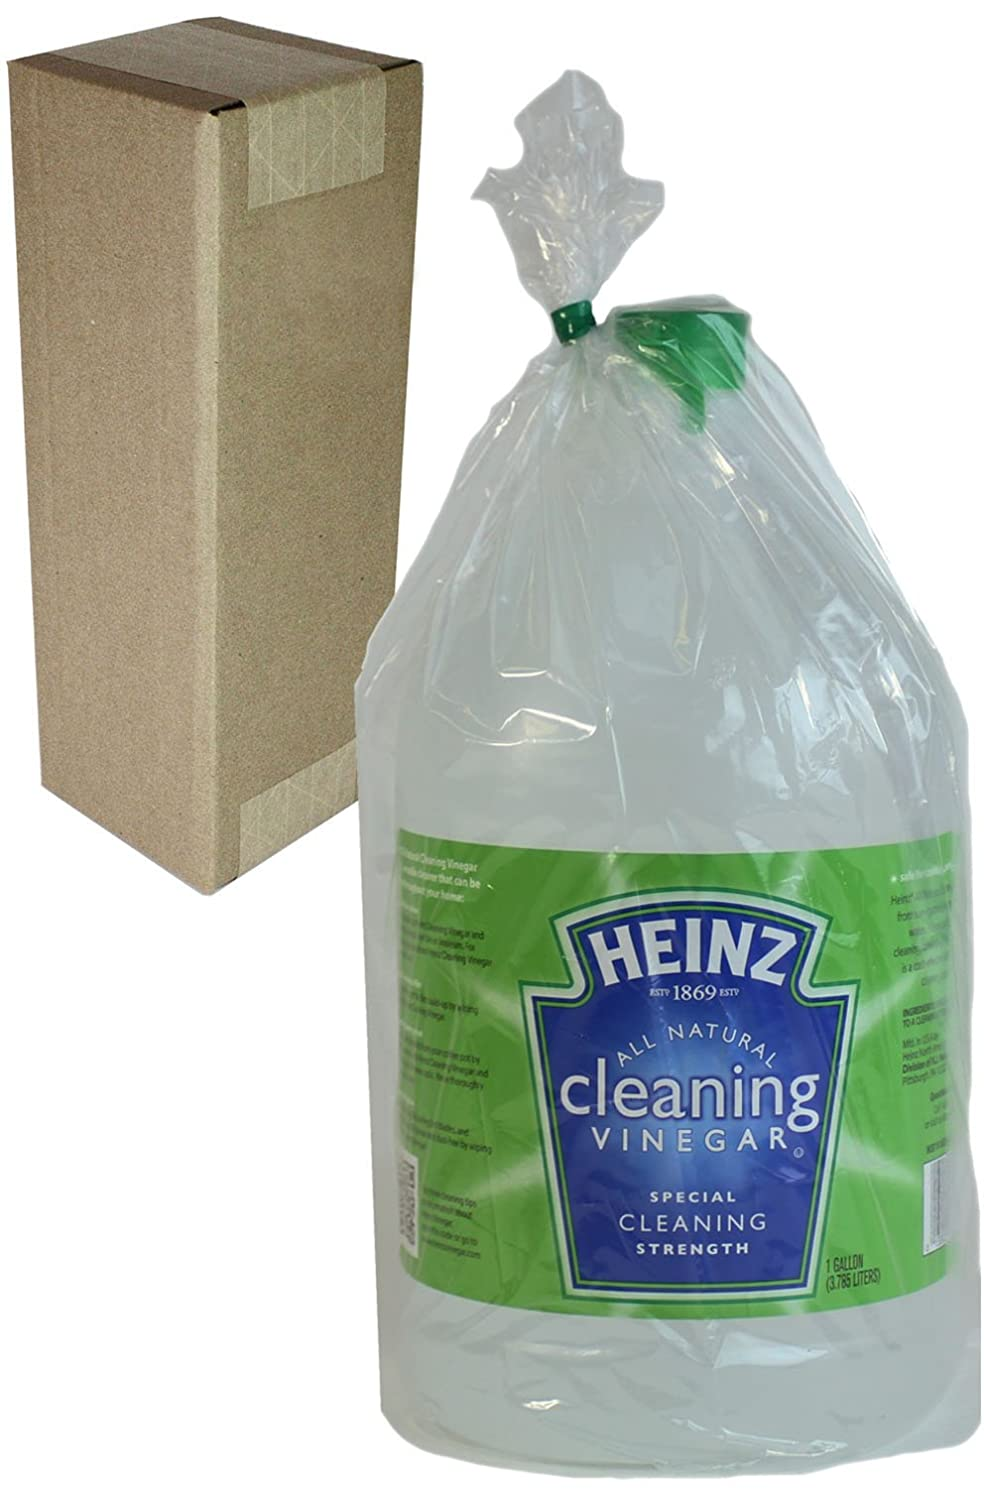 Heinz Multi-Purpose Cleaning Vinegar, 128 oz, 6% Acidity, Poly Bagged & Boxed